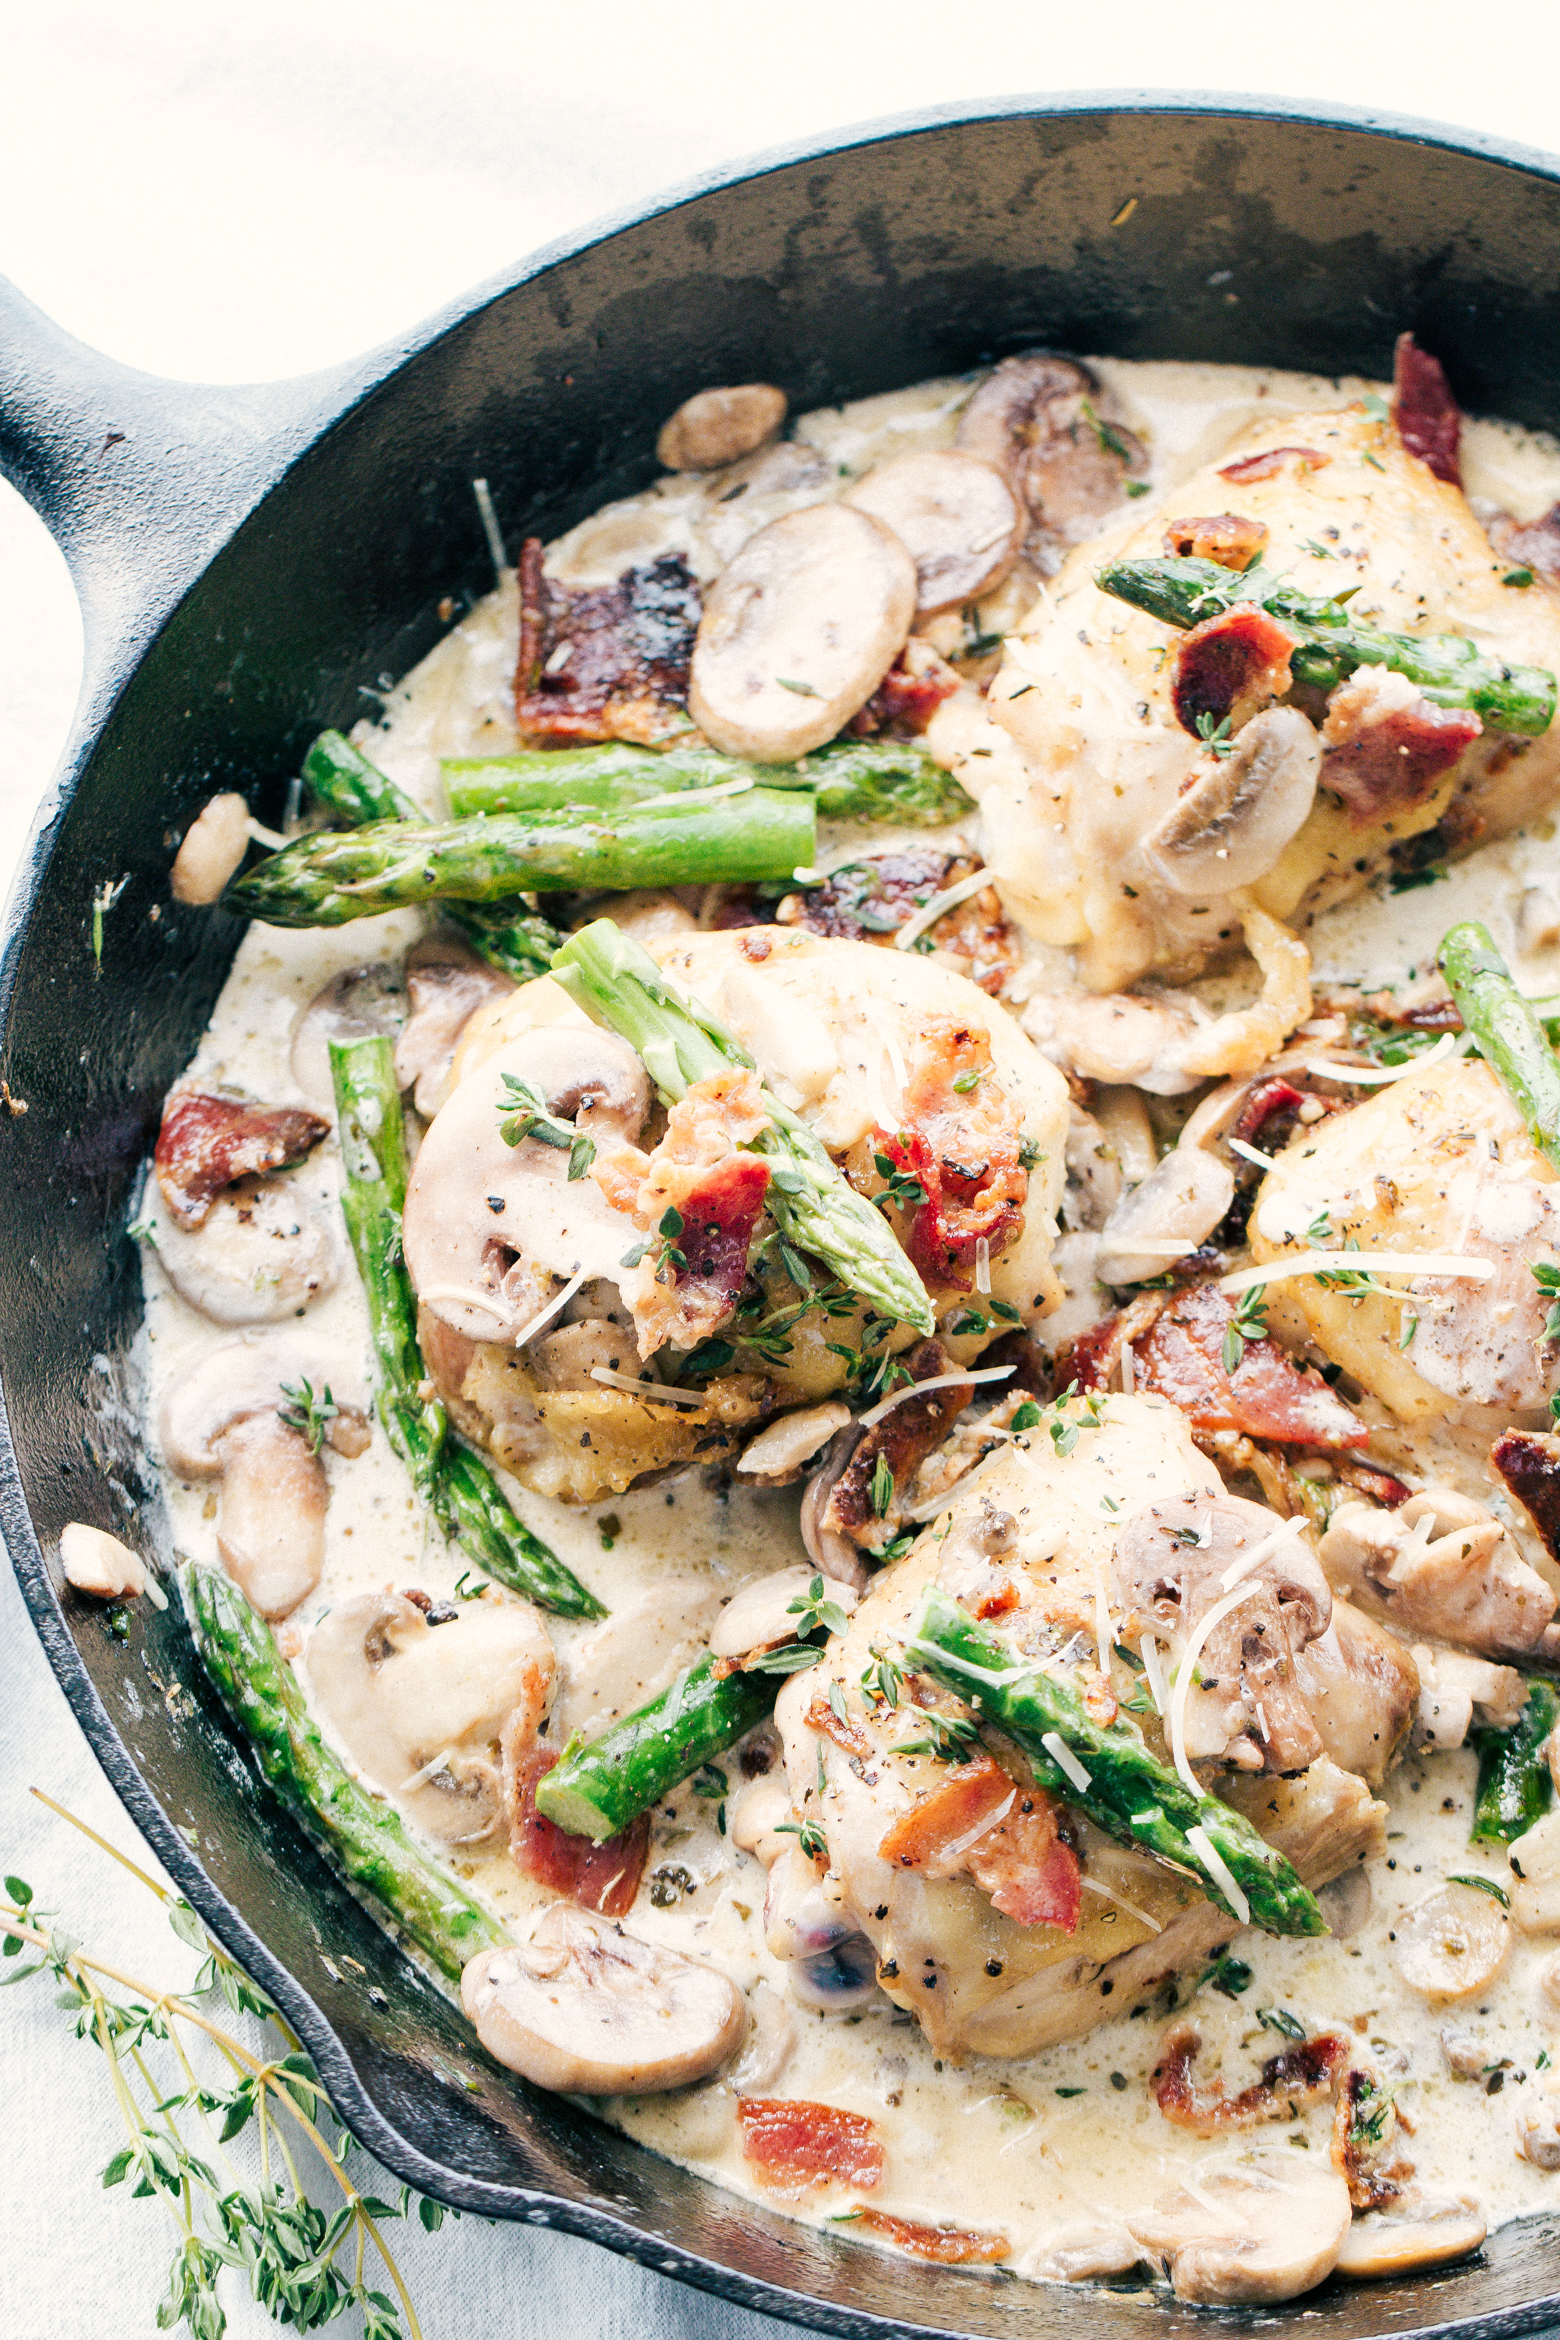 chicken mushroom asparagus skillet in a creamy parmesan sauce made in one pot by The Food Cafe.